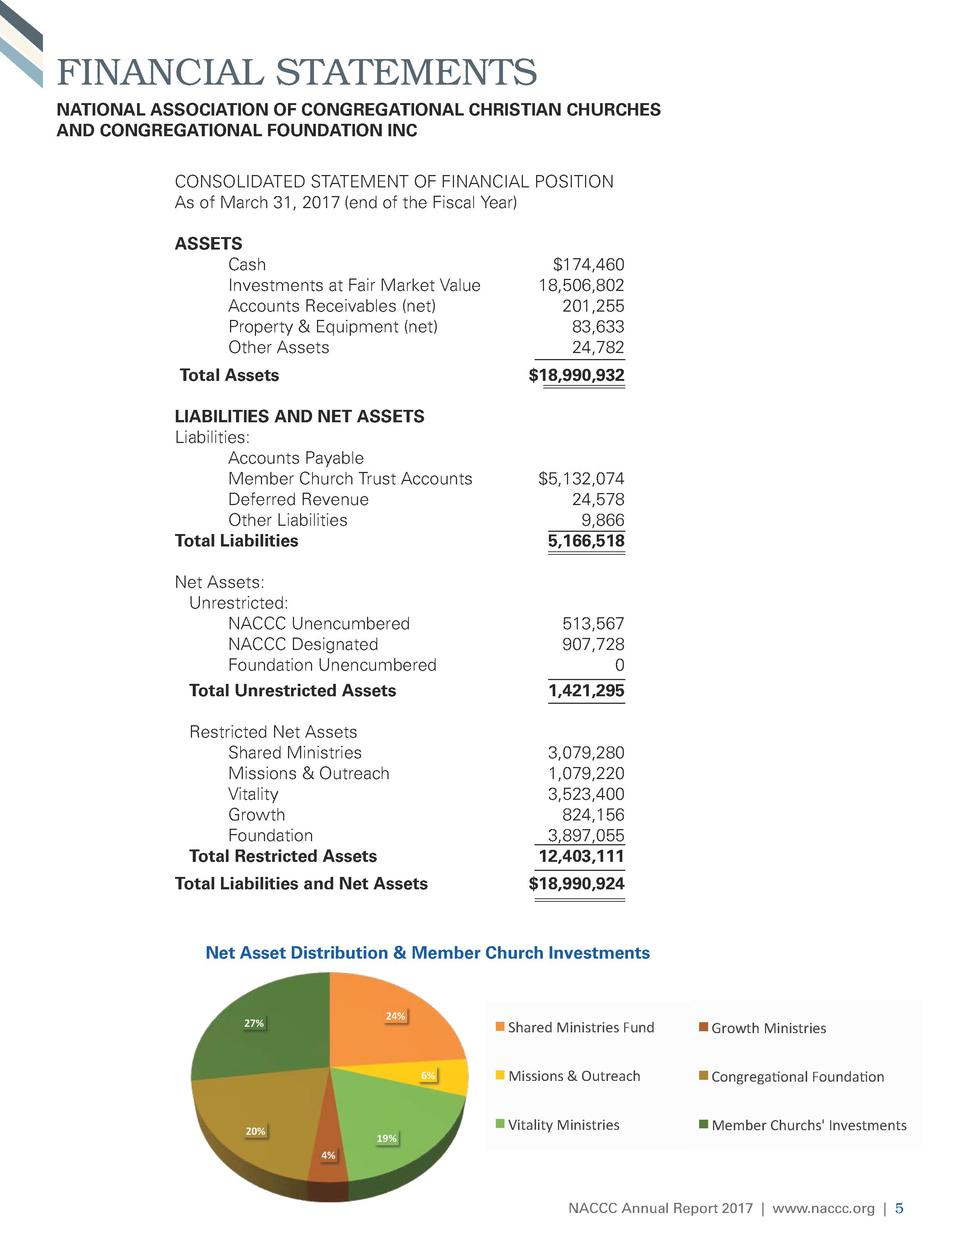 FINANCIAL STATEMENTS NATIONAL ASSOCIATION OF CONGREGATIONAL CHRISTIAN CHURCHES AND CONGREGATIONAL FOUNDATION INC CONSOLIDA...